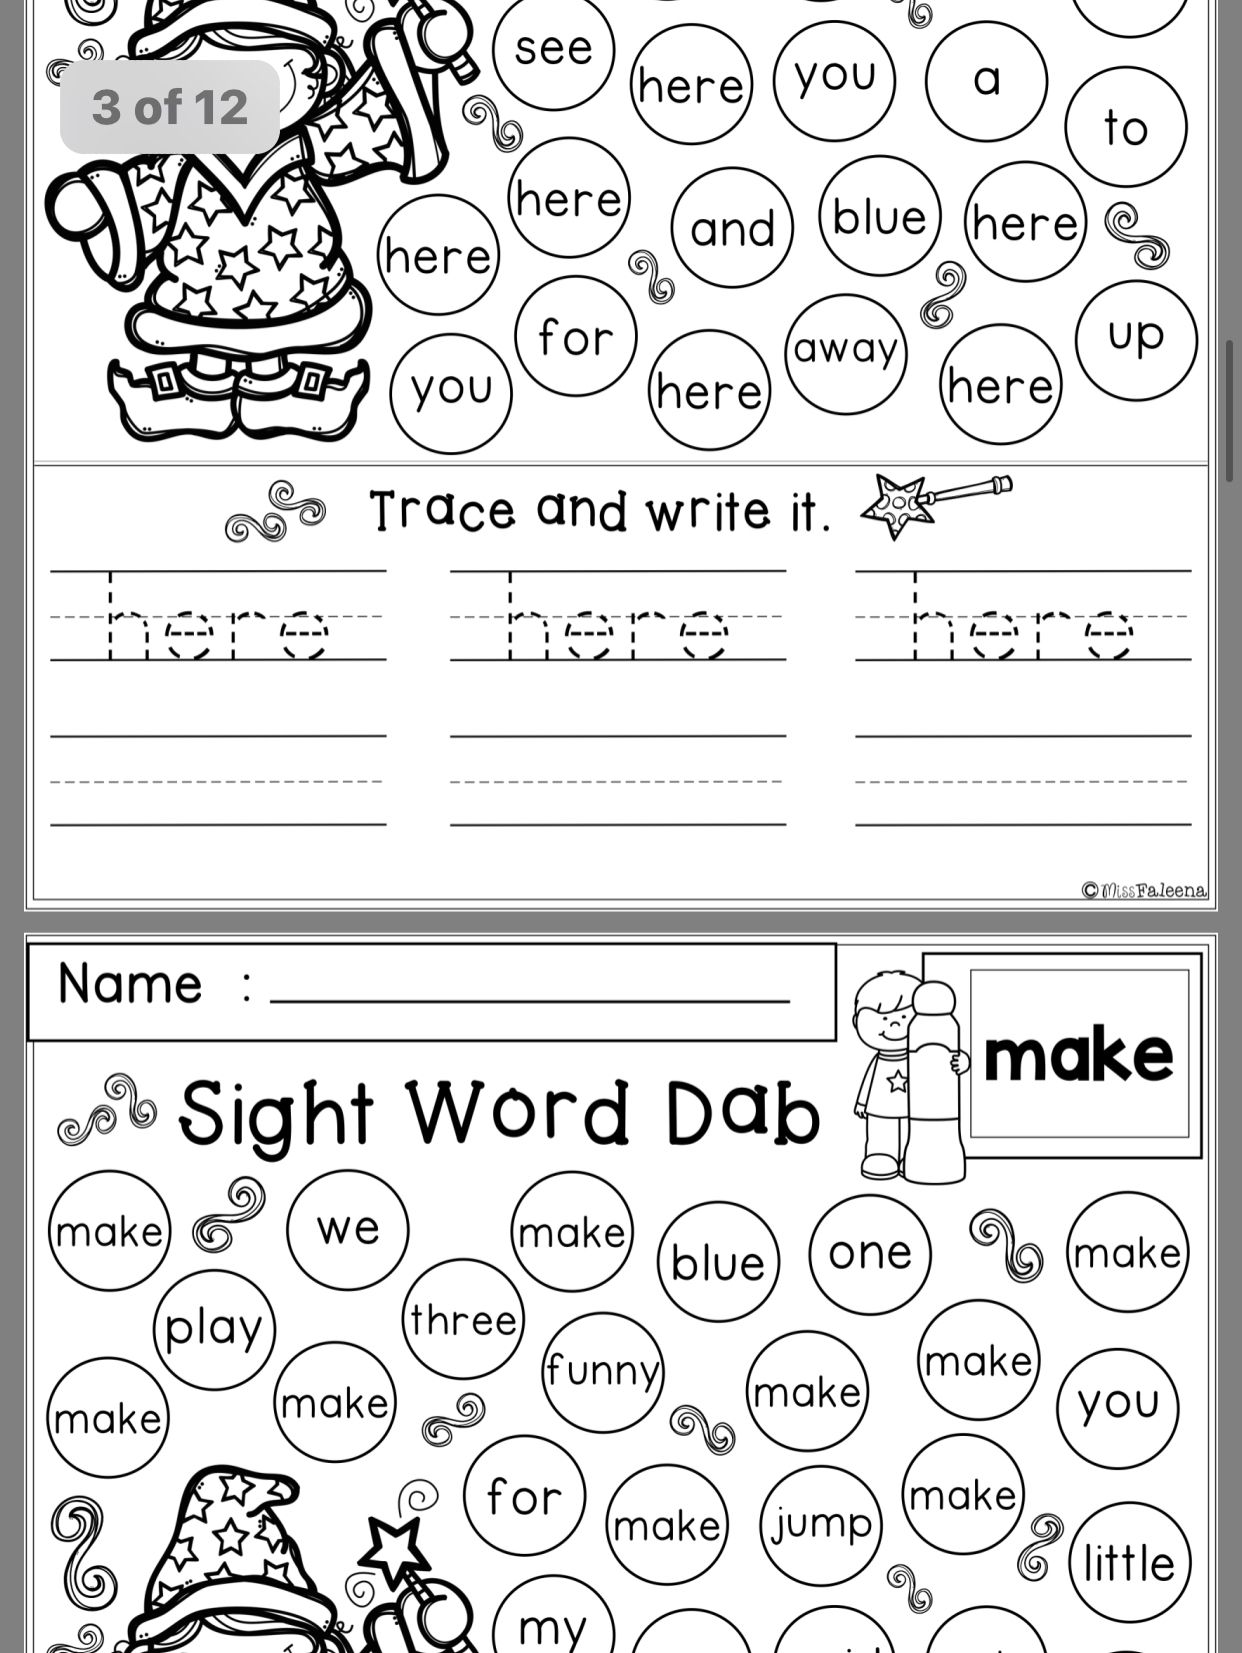 Pin By Amber Wray On Sight Words